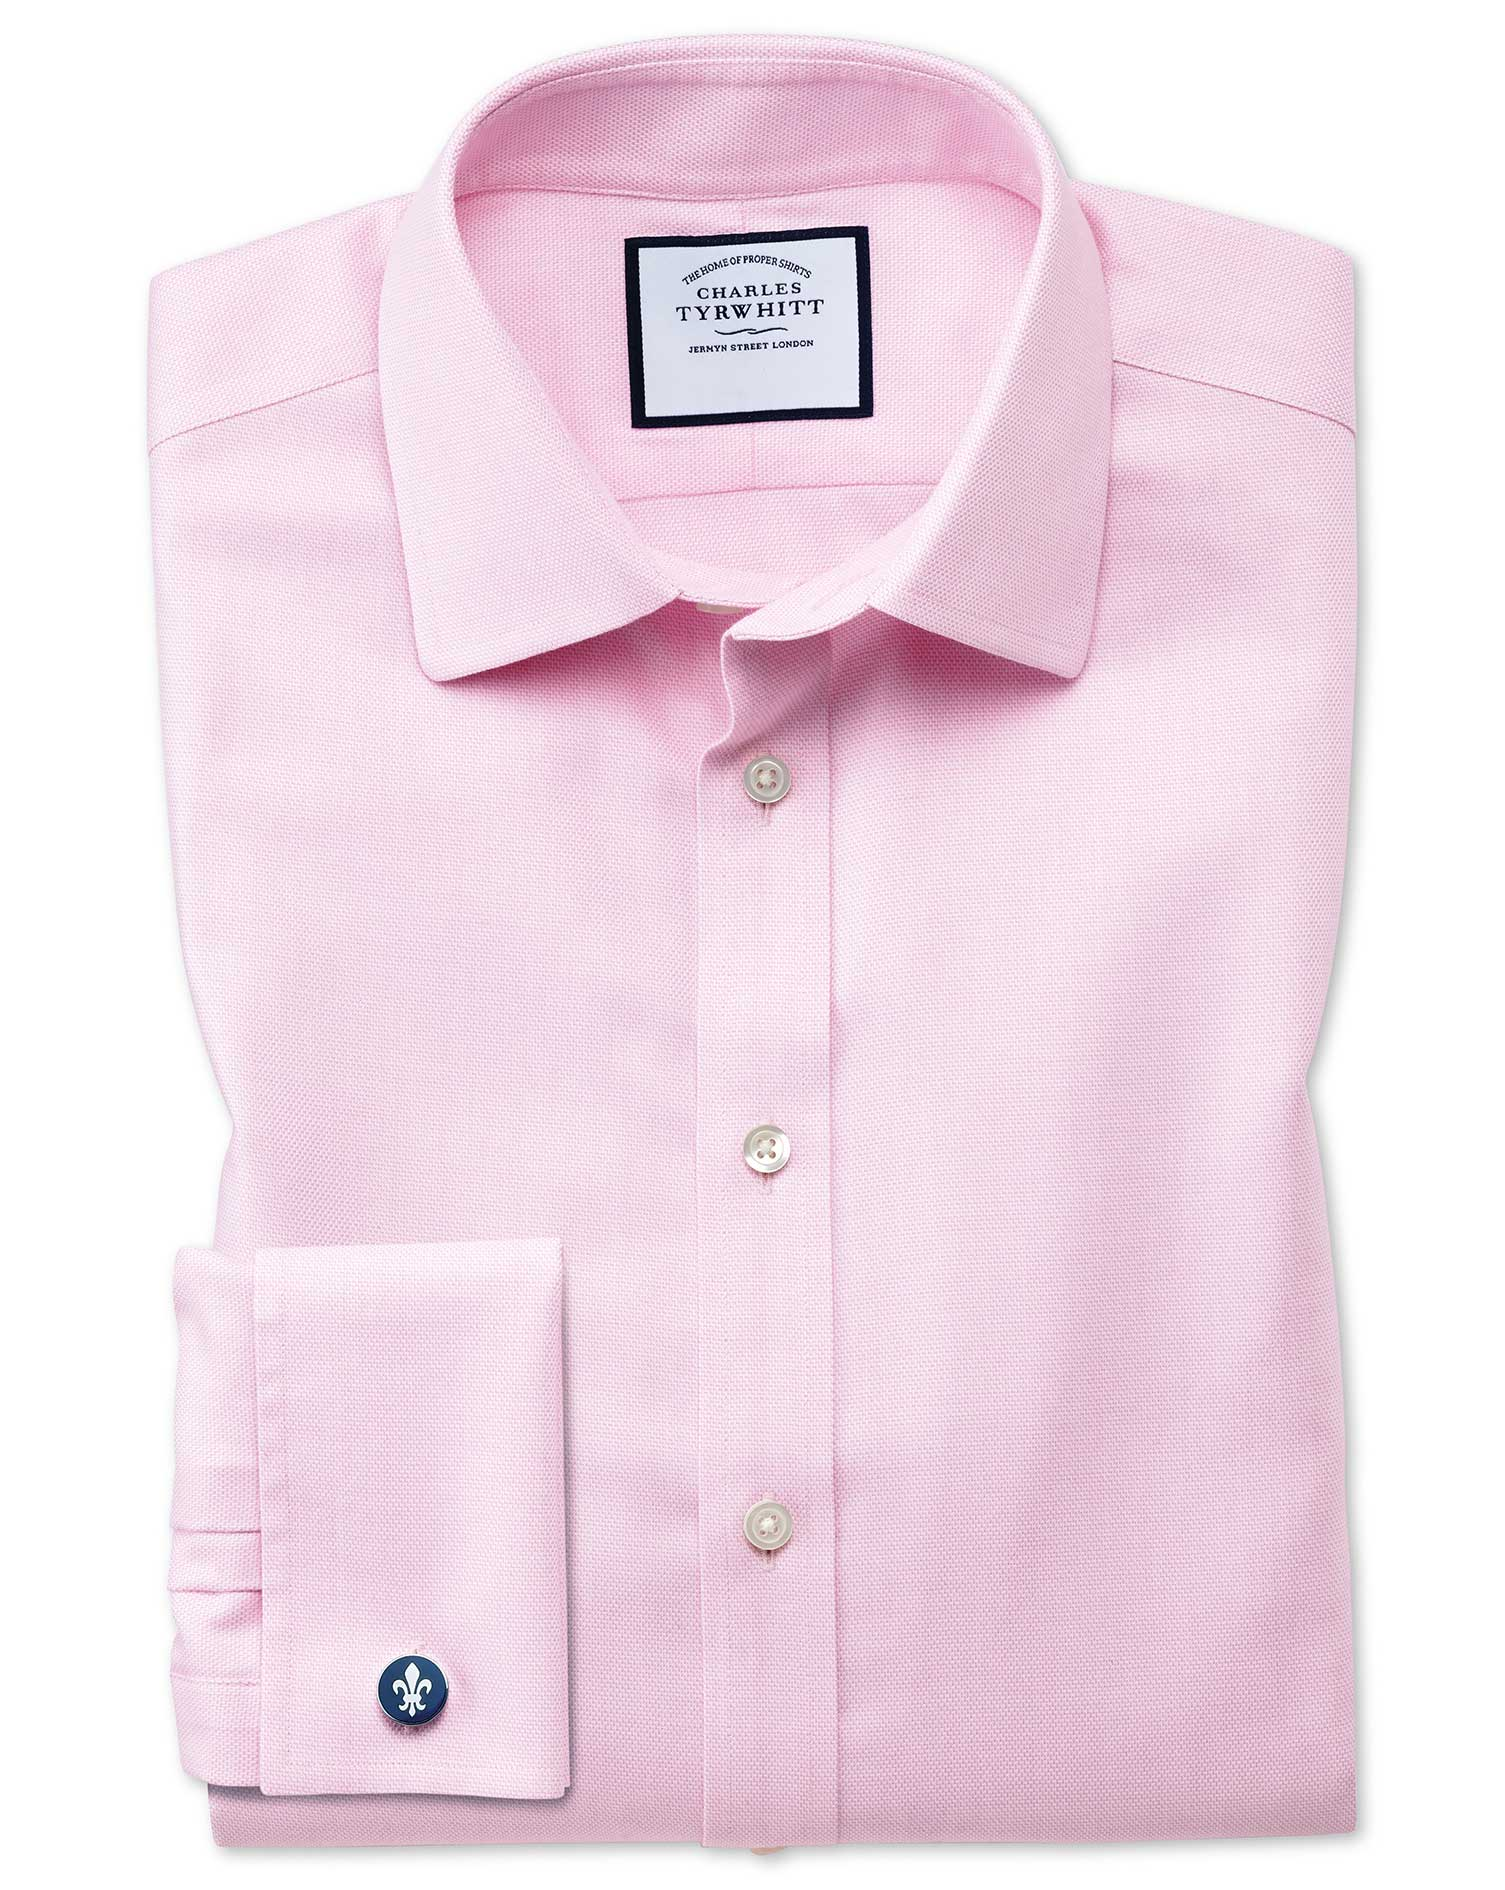 Slim Fit Non-Iron Step Weave Pink Cotton Formal Shirt Single Cuff Size 17/33 by Charles Tyrwhitt